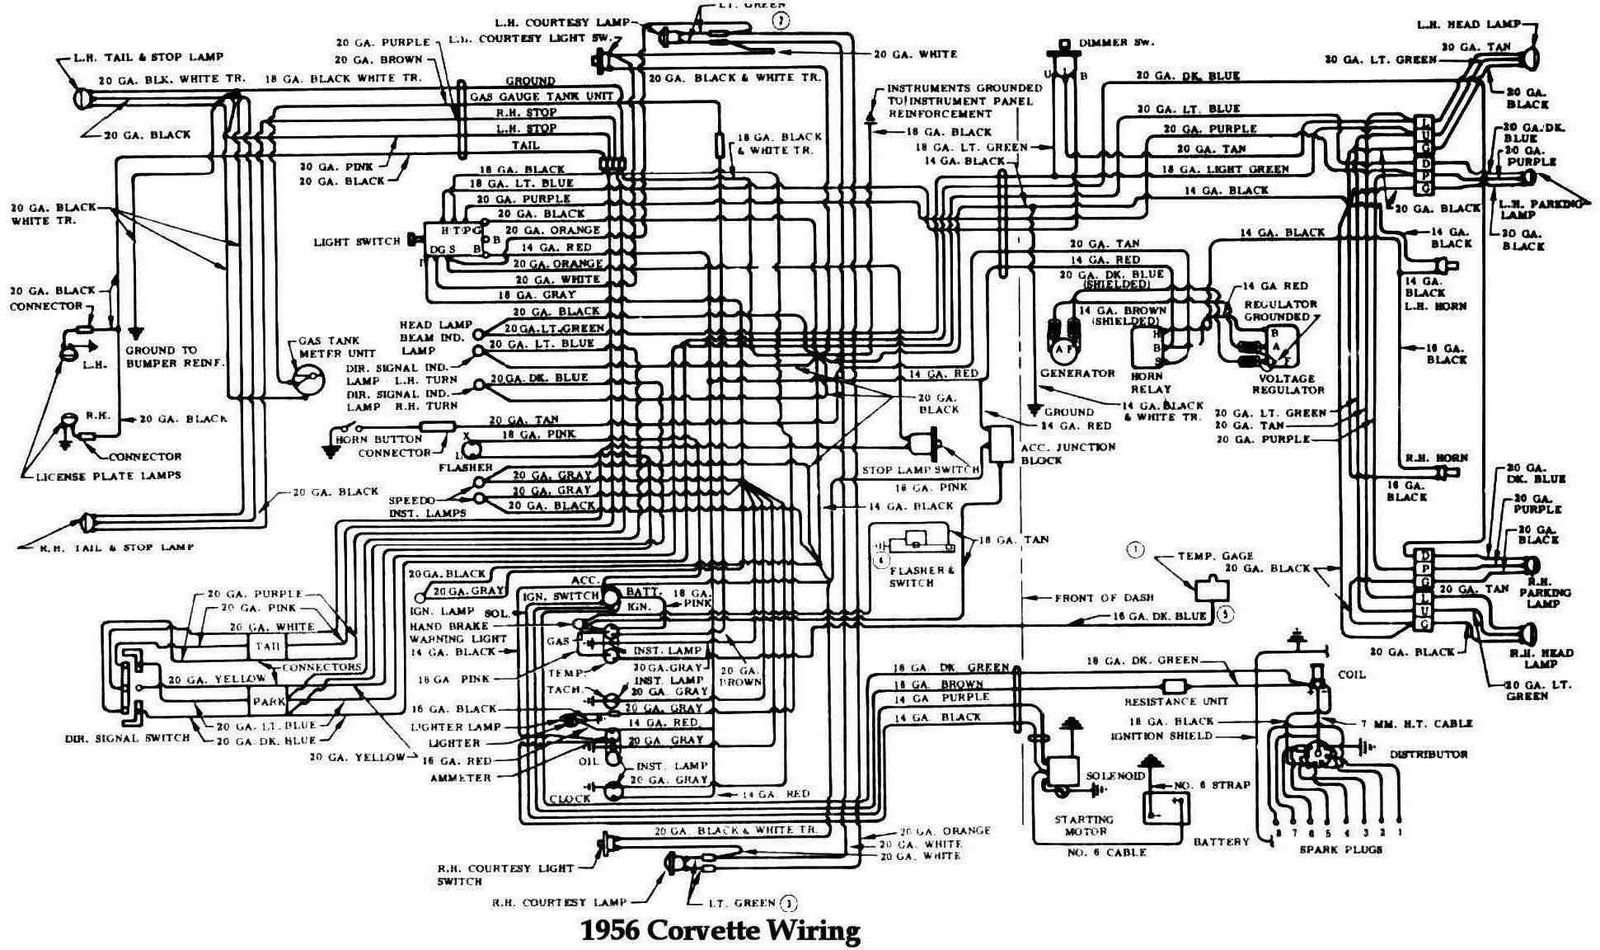 chevrolet corvette 1956 wiring diagram all about wiring